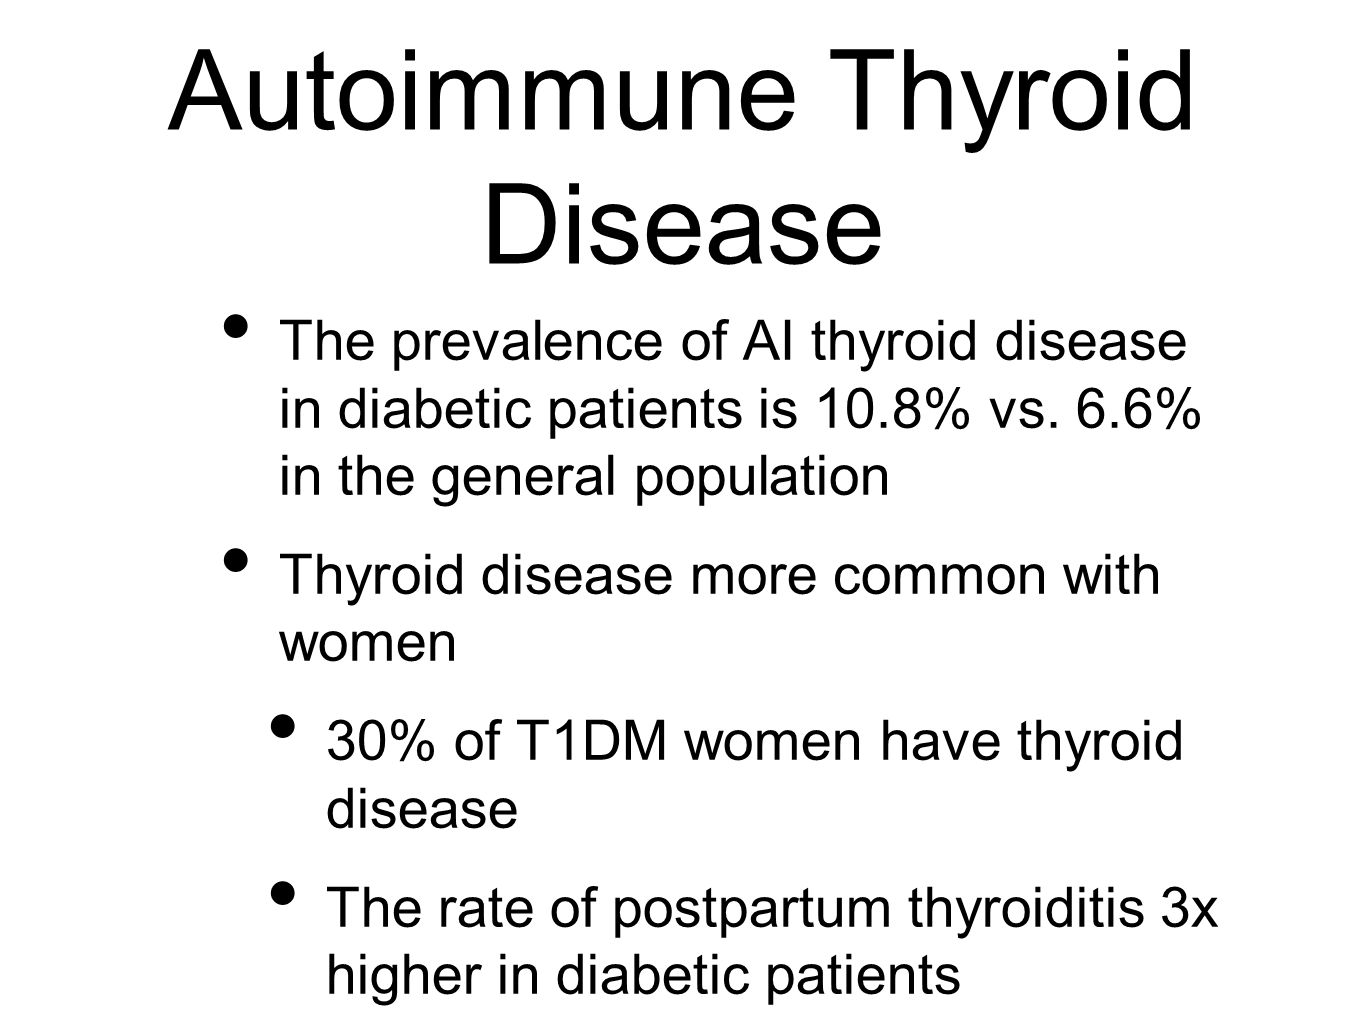 Implications of Hyperthyroidism One patient's presenting with diabetes when hyperthyroid, may have resolution of diabetes when hyperthyroidism is treated Worsening hyperthyroidism will cause deterioration of glucose control Treatment may cause improvement in insulin sensitivity, and needs to be anticipated